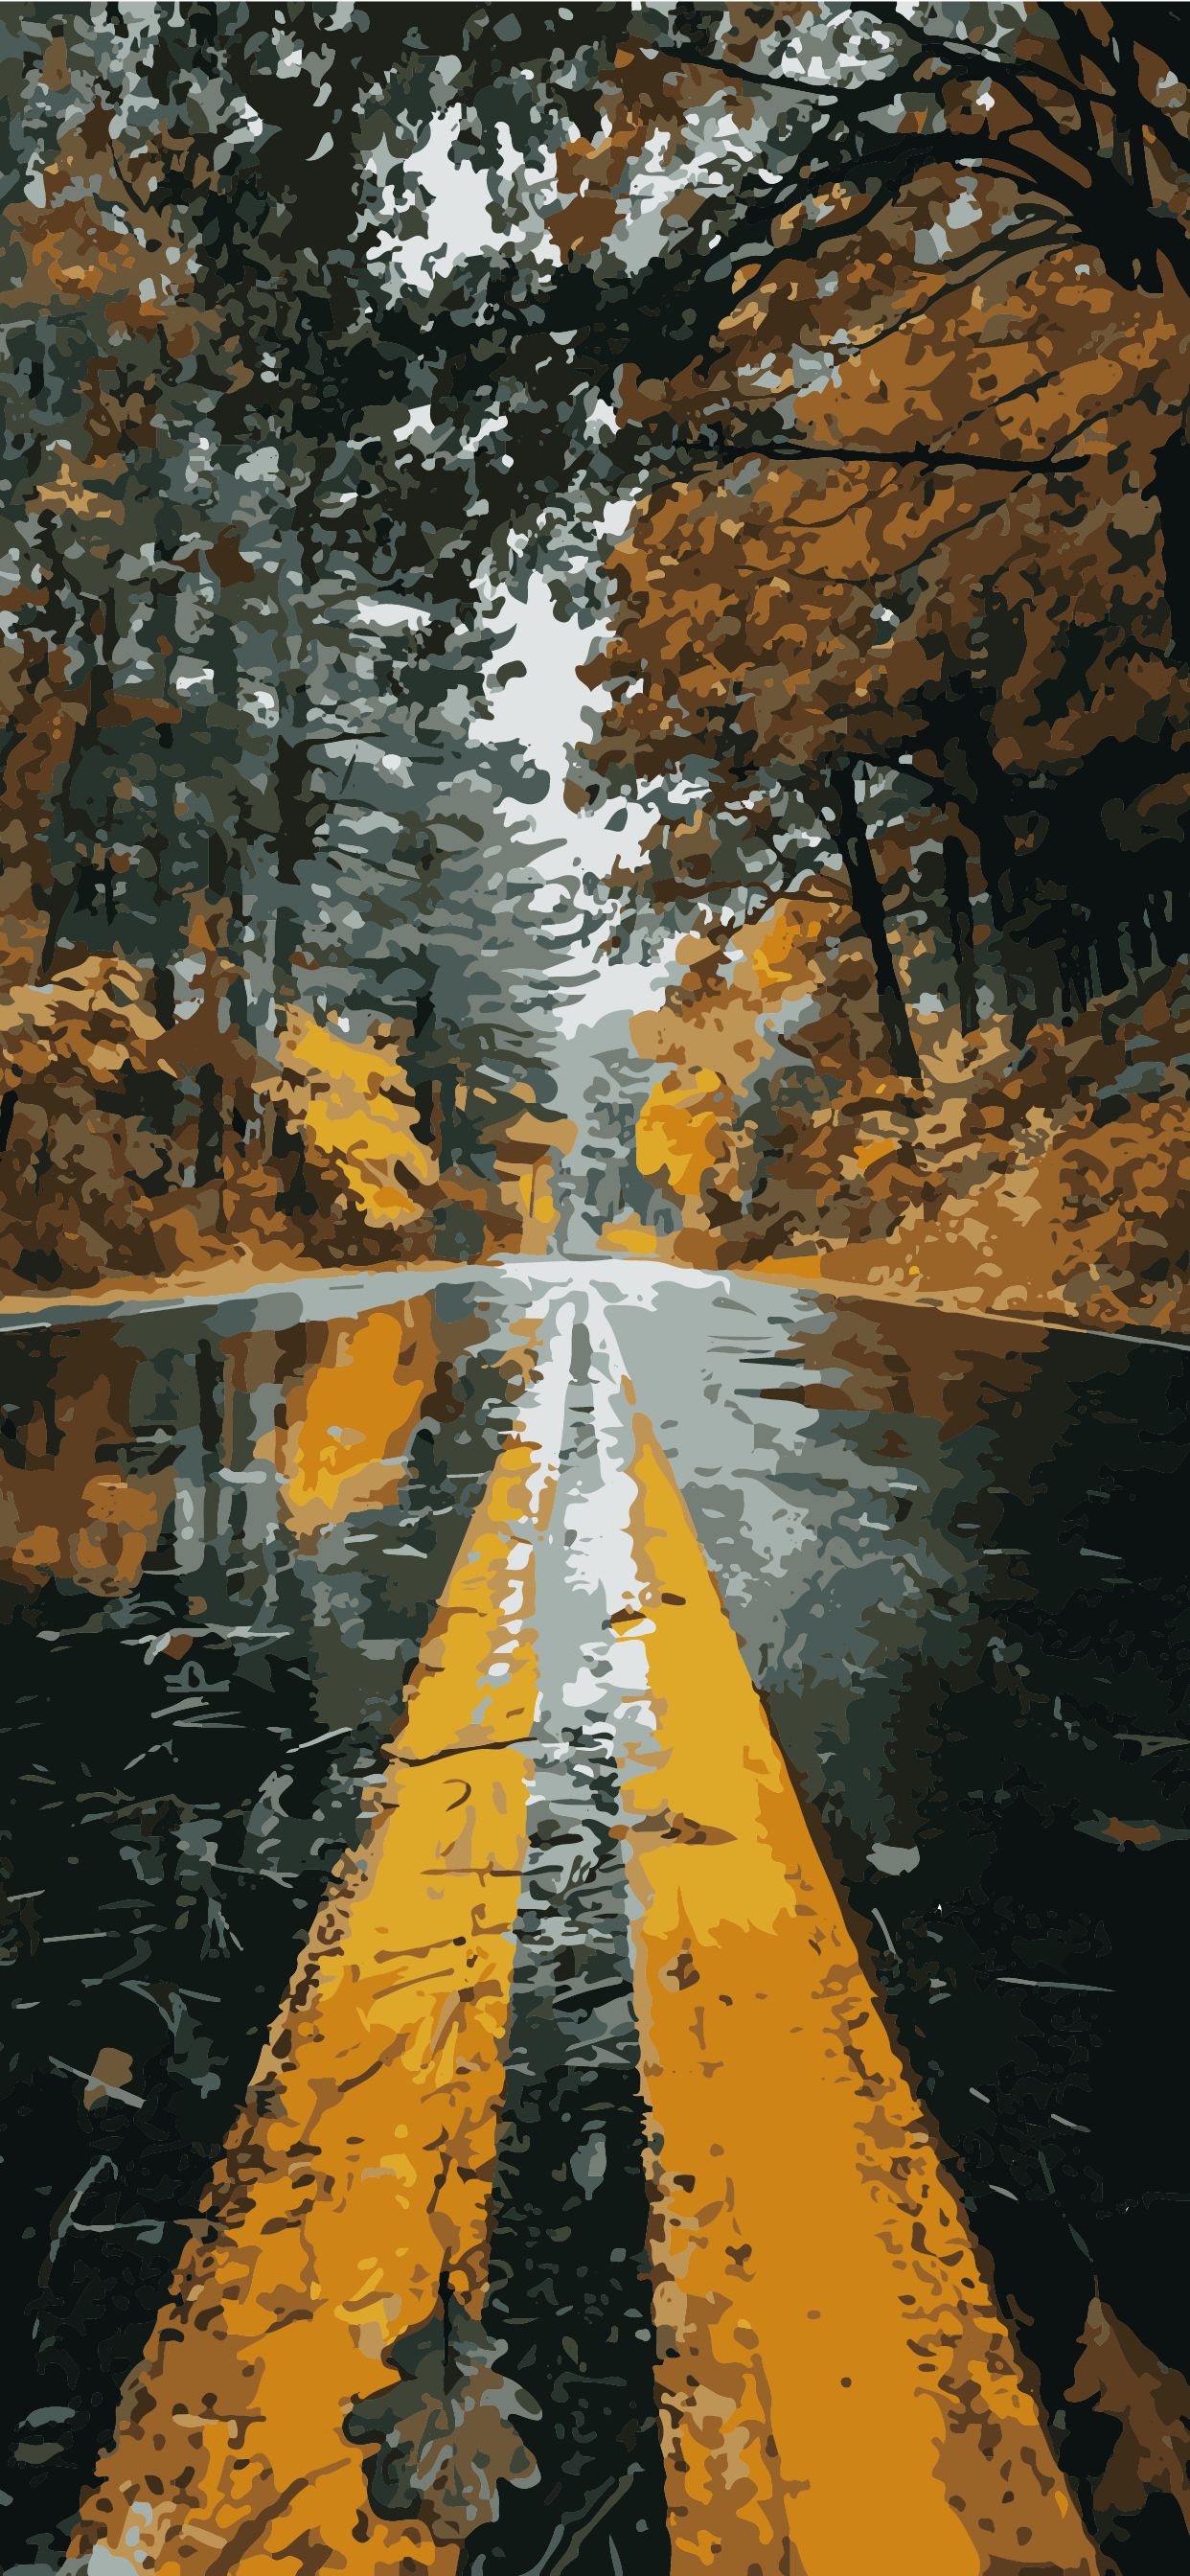 Road wallpaper background draw